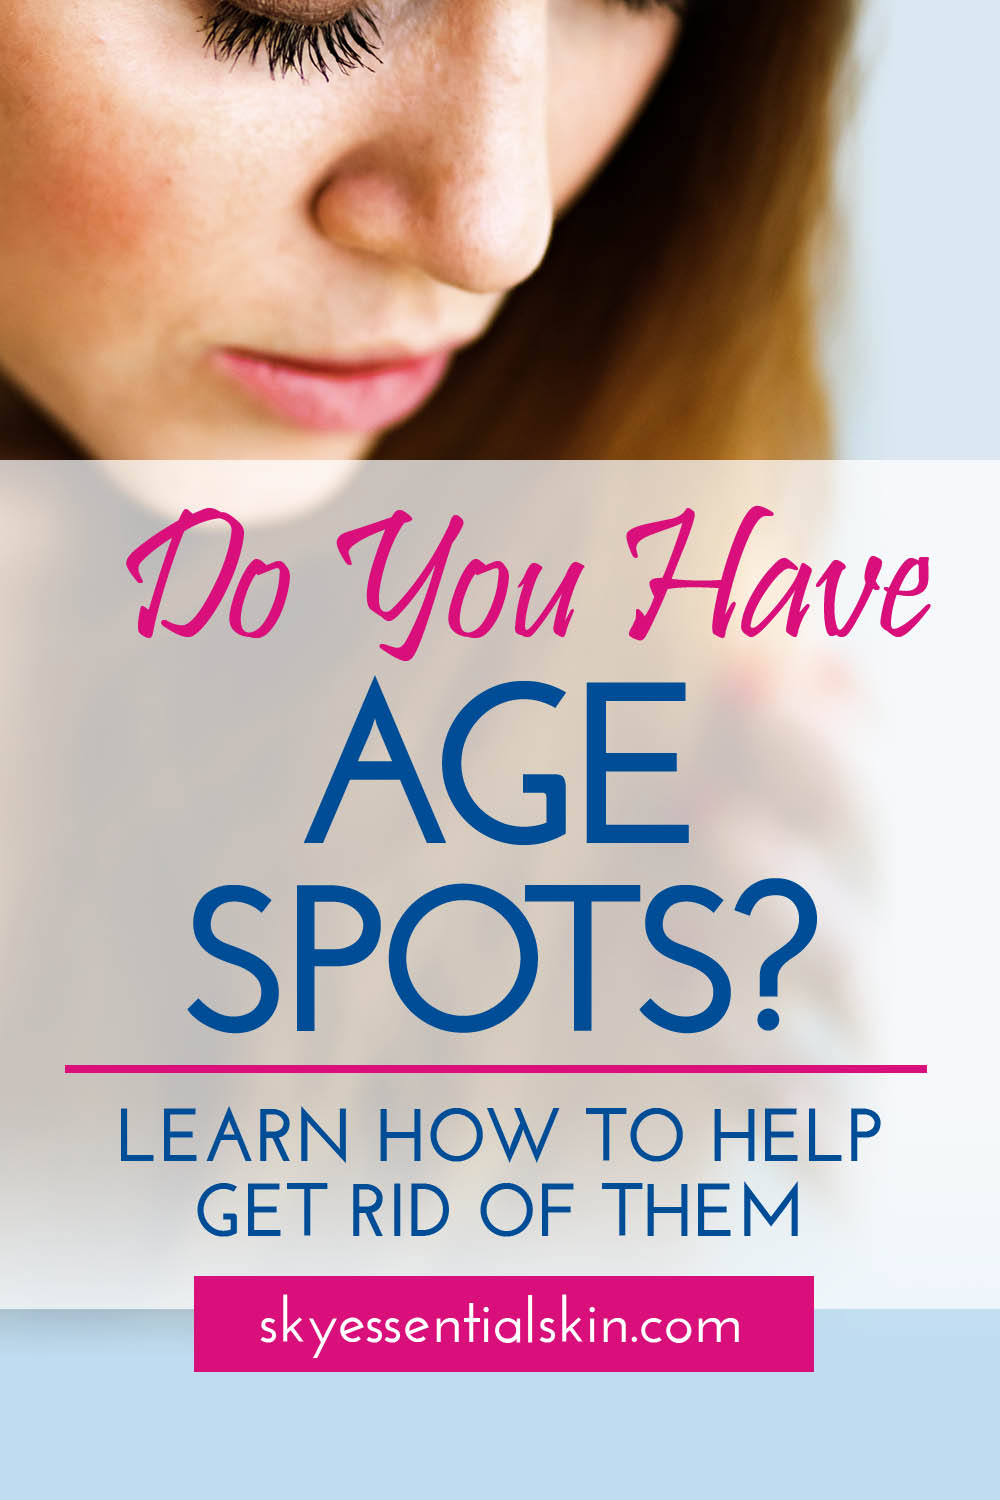 Do you have age spots_Learn how to help get rid of them.jpg